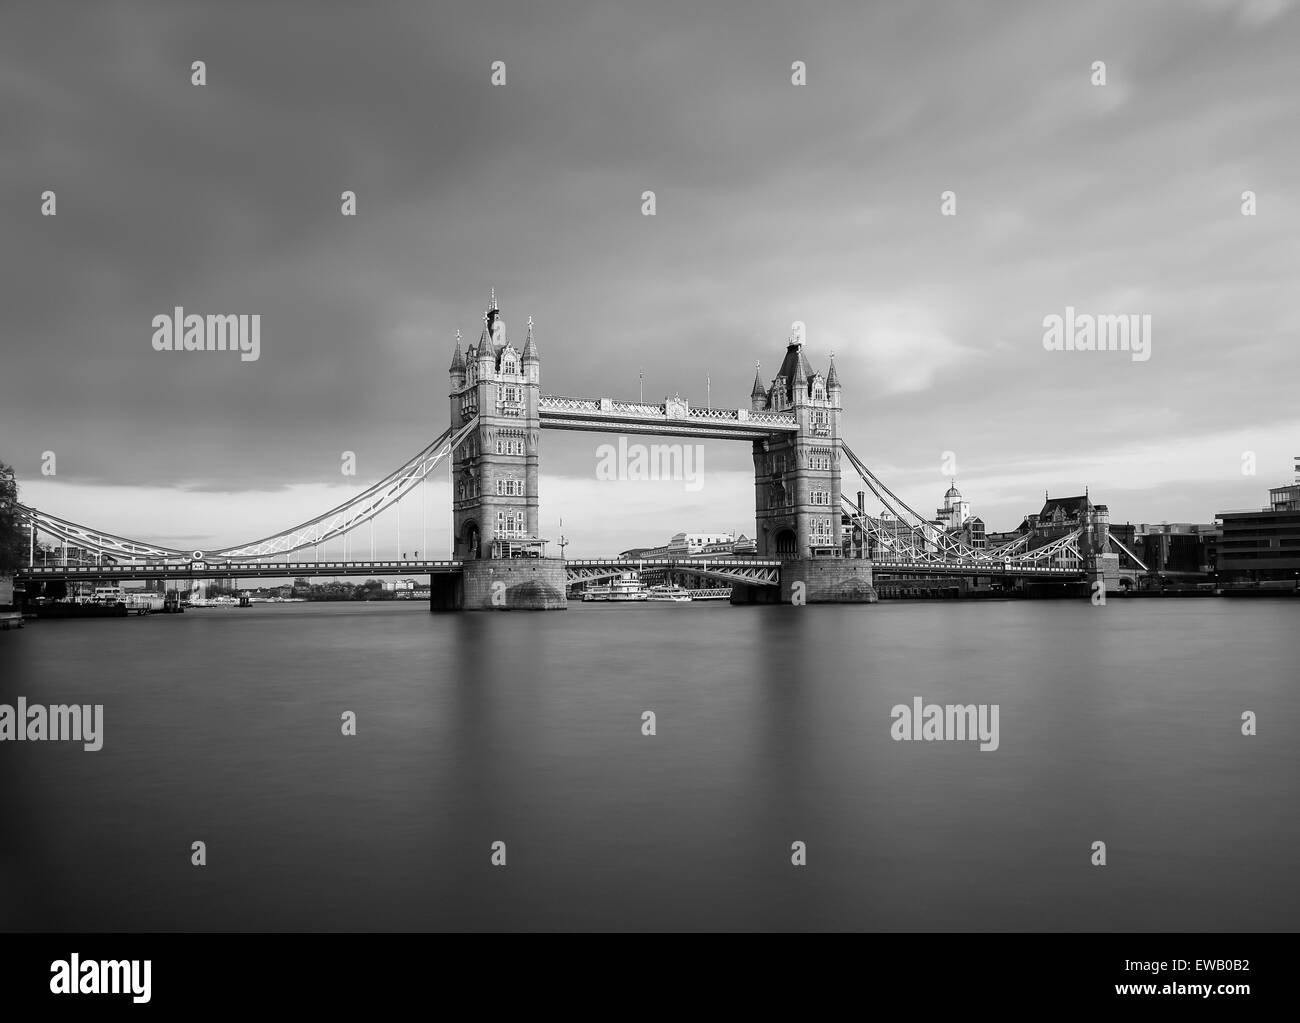 Tower Bridge in black and white taken with a long exposure. There is copy space on the image. - Stock Image